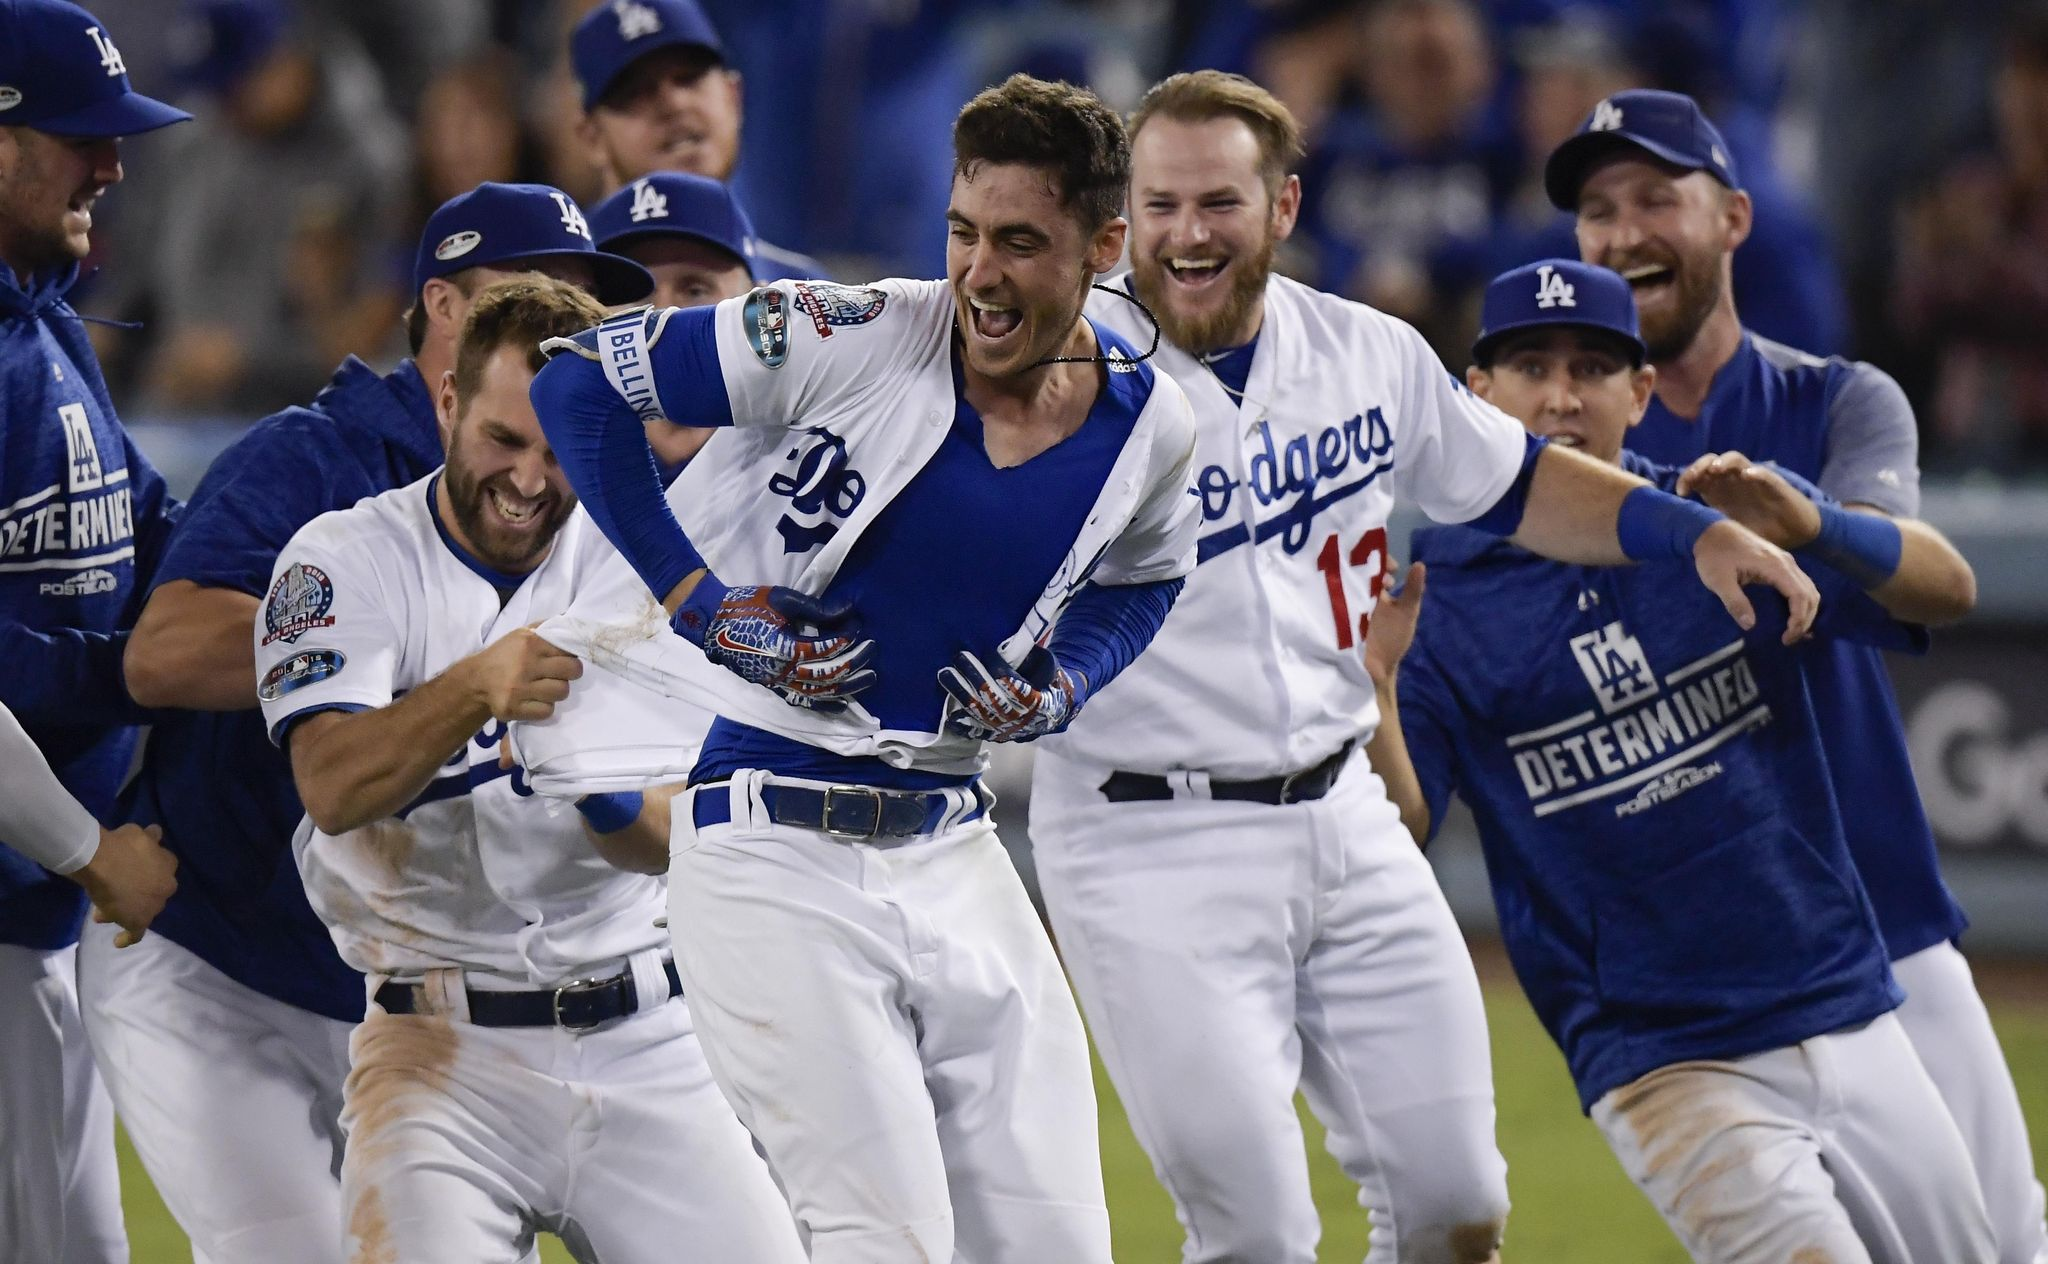 Nlcs_brewers_dodgers_baseball_37878_s2048x1264